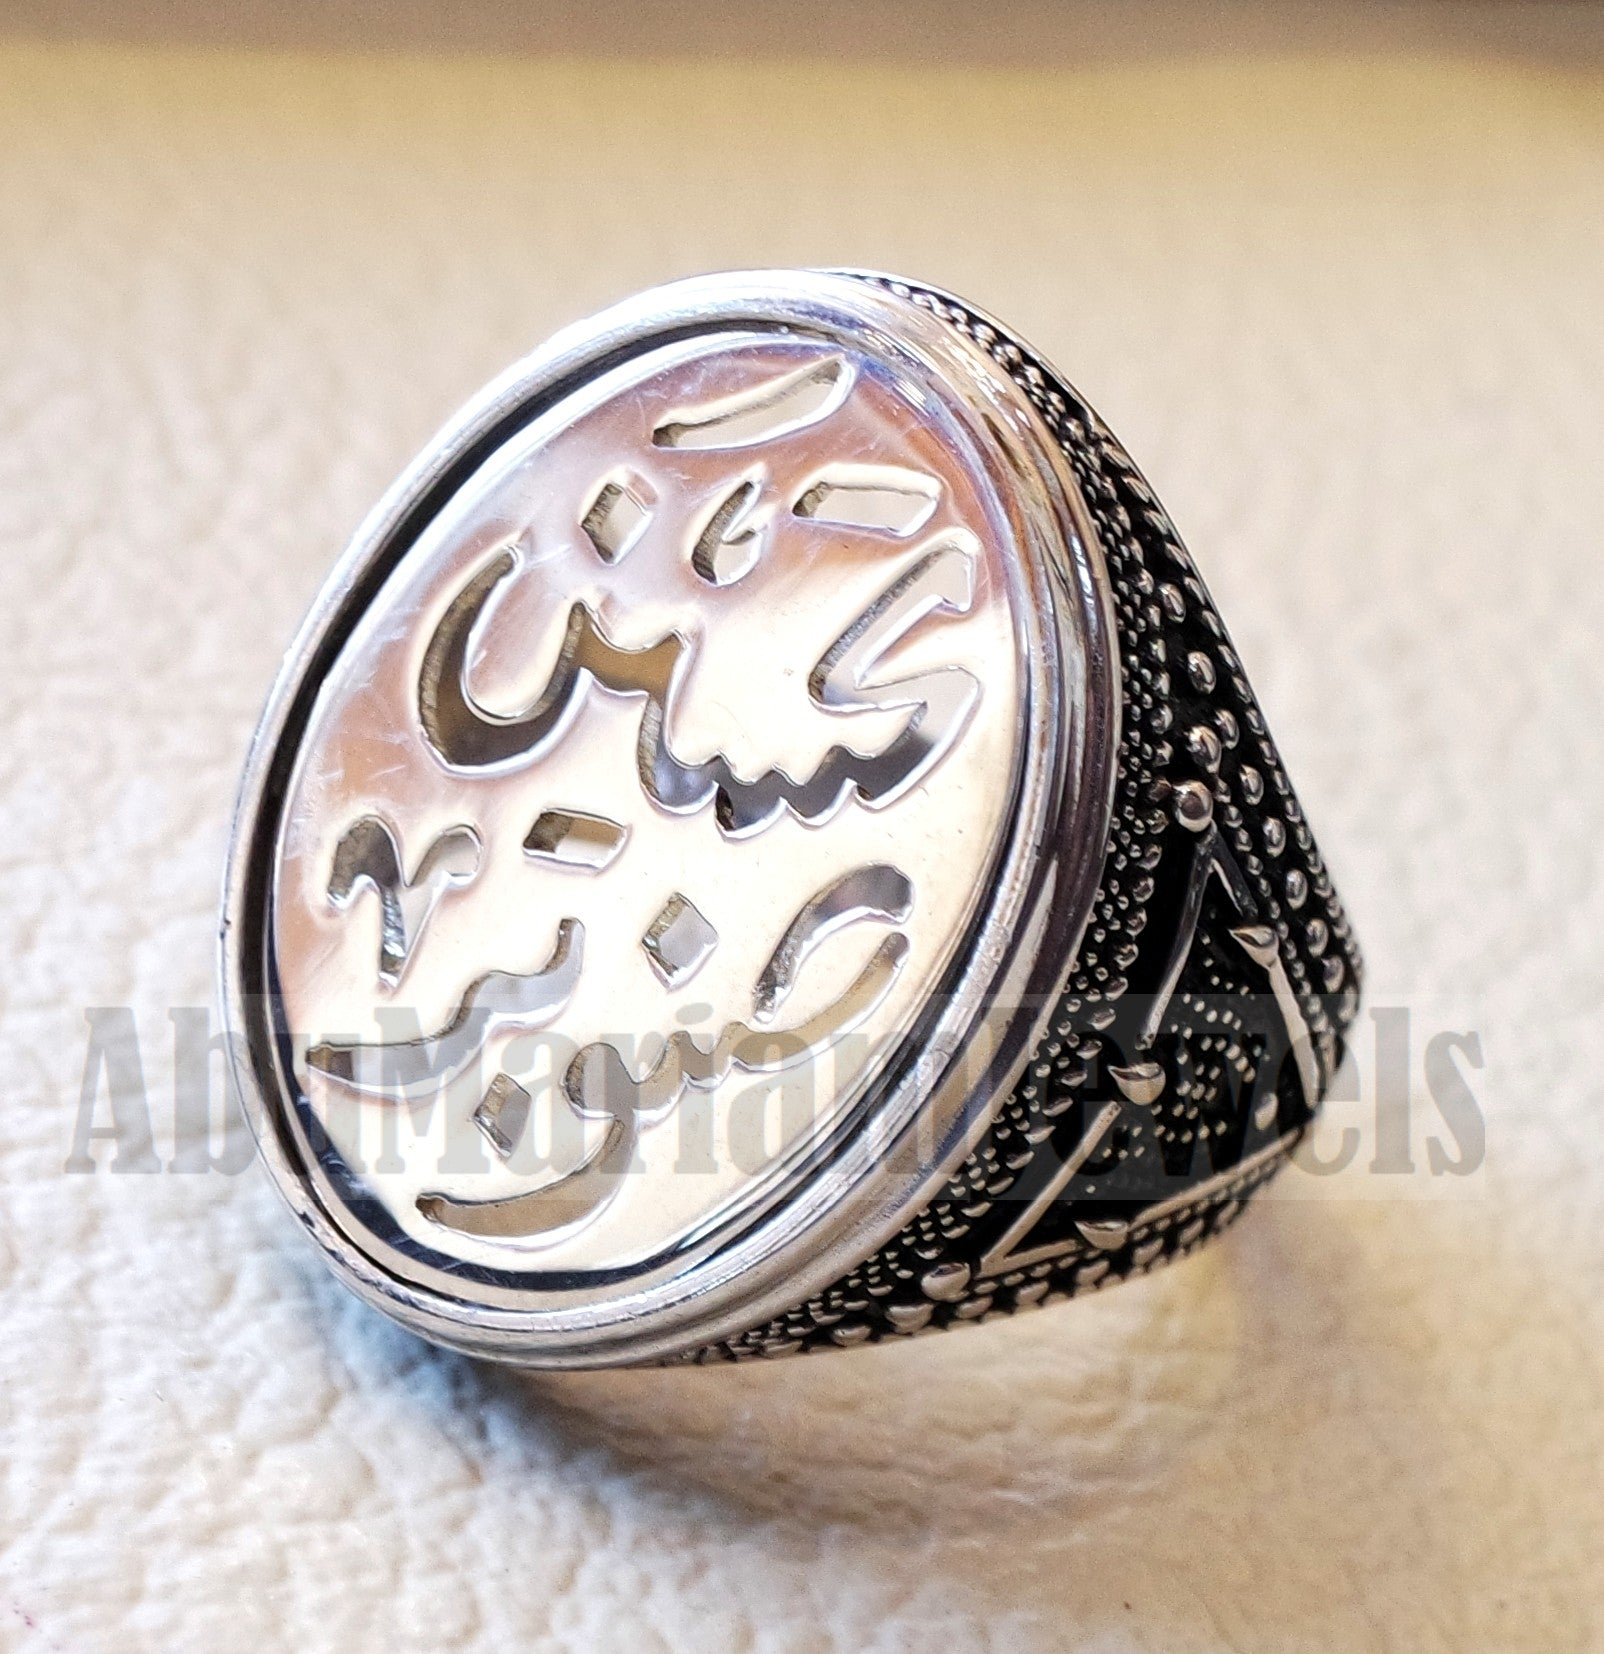 Customized Arabic calligraphy names ring personalized antique jewelry style sterling silver 925  any size TSN1001 خاتم اسم تفصيل